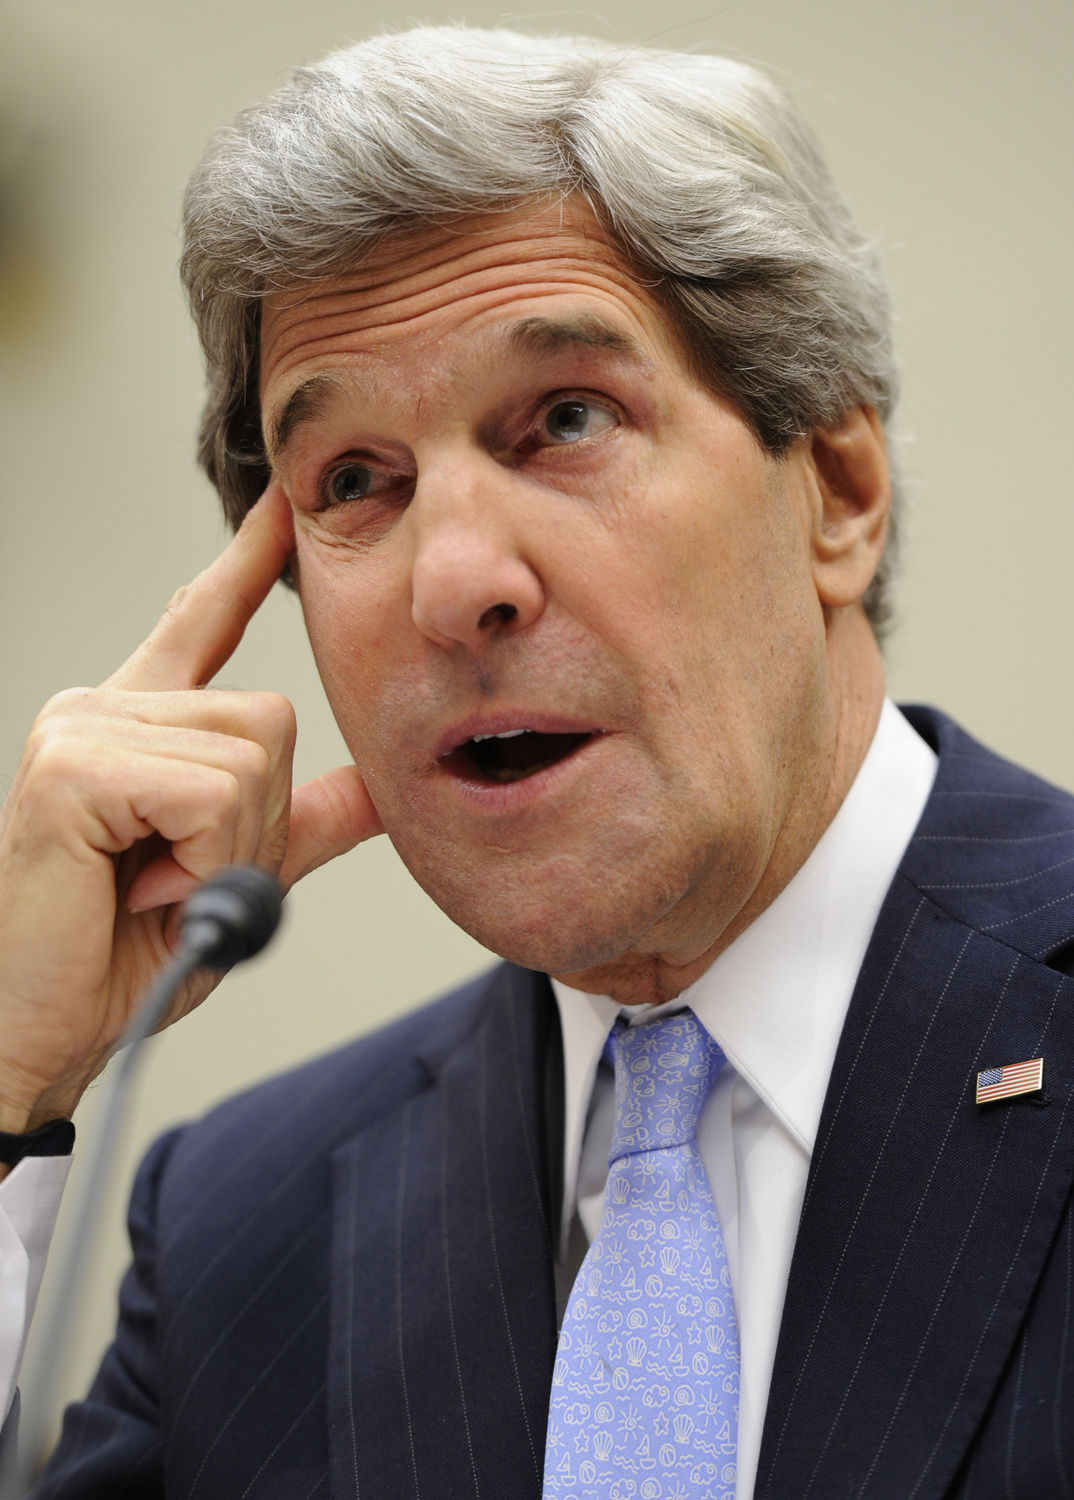 Secretary of State Kerry testifies before the House Foreign Affairs Committee in Washington